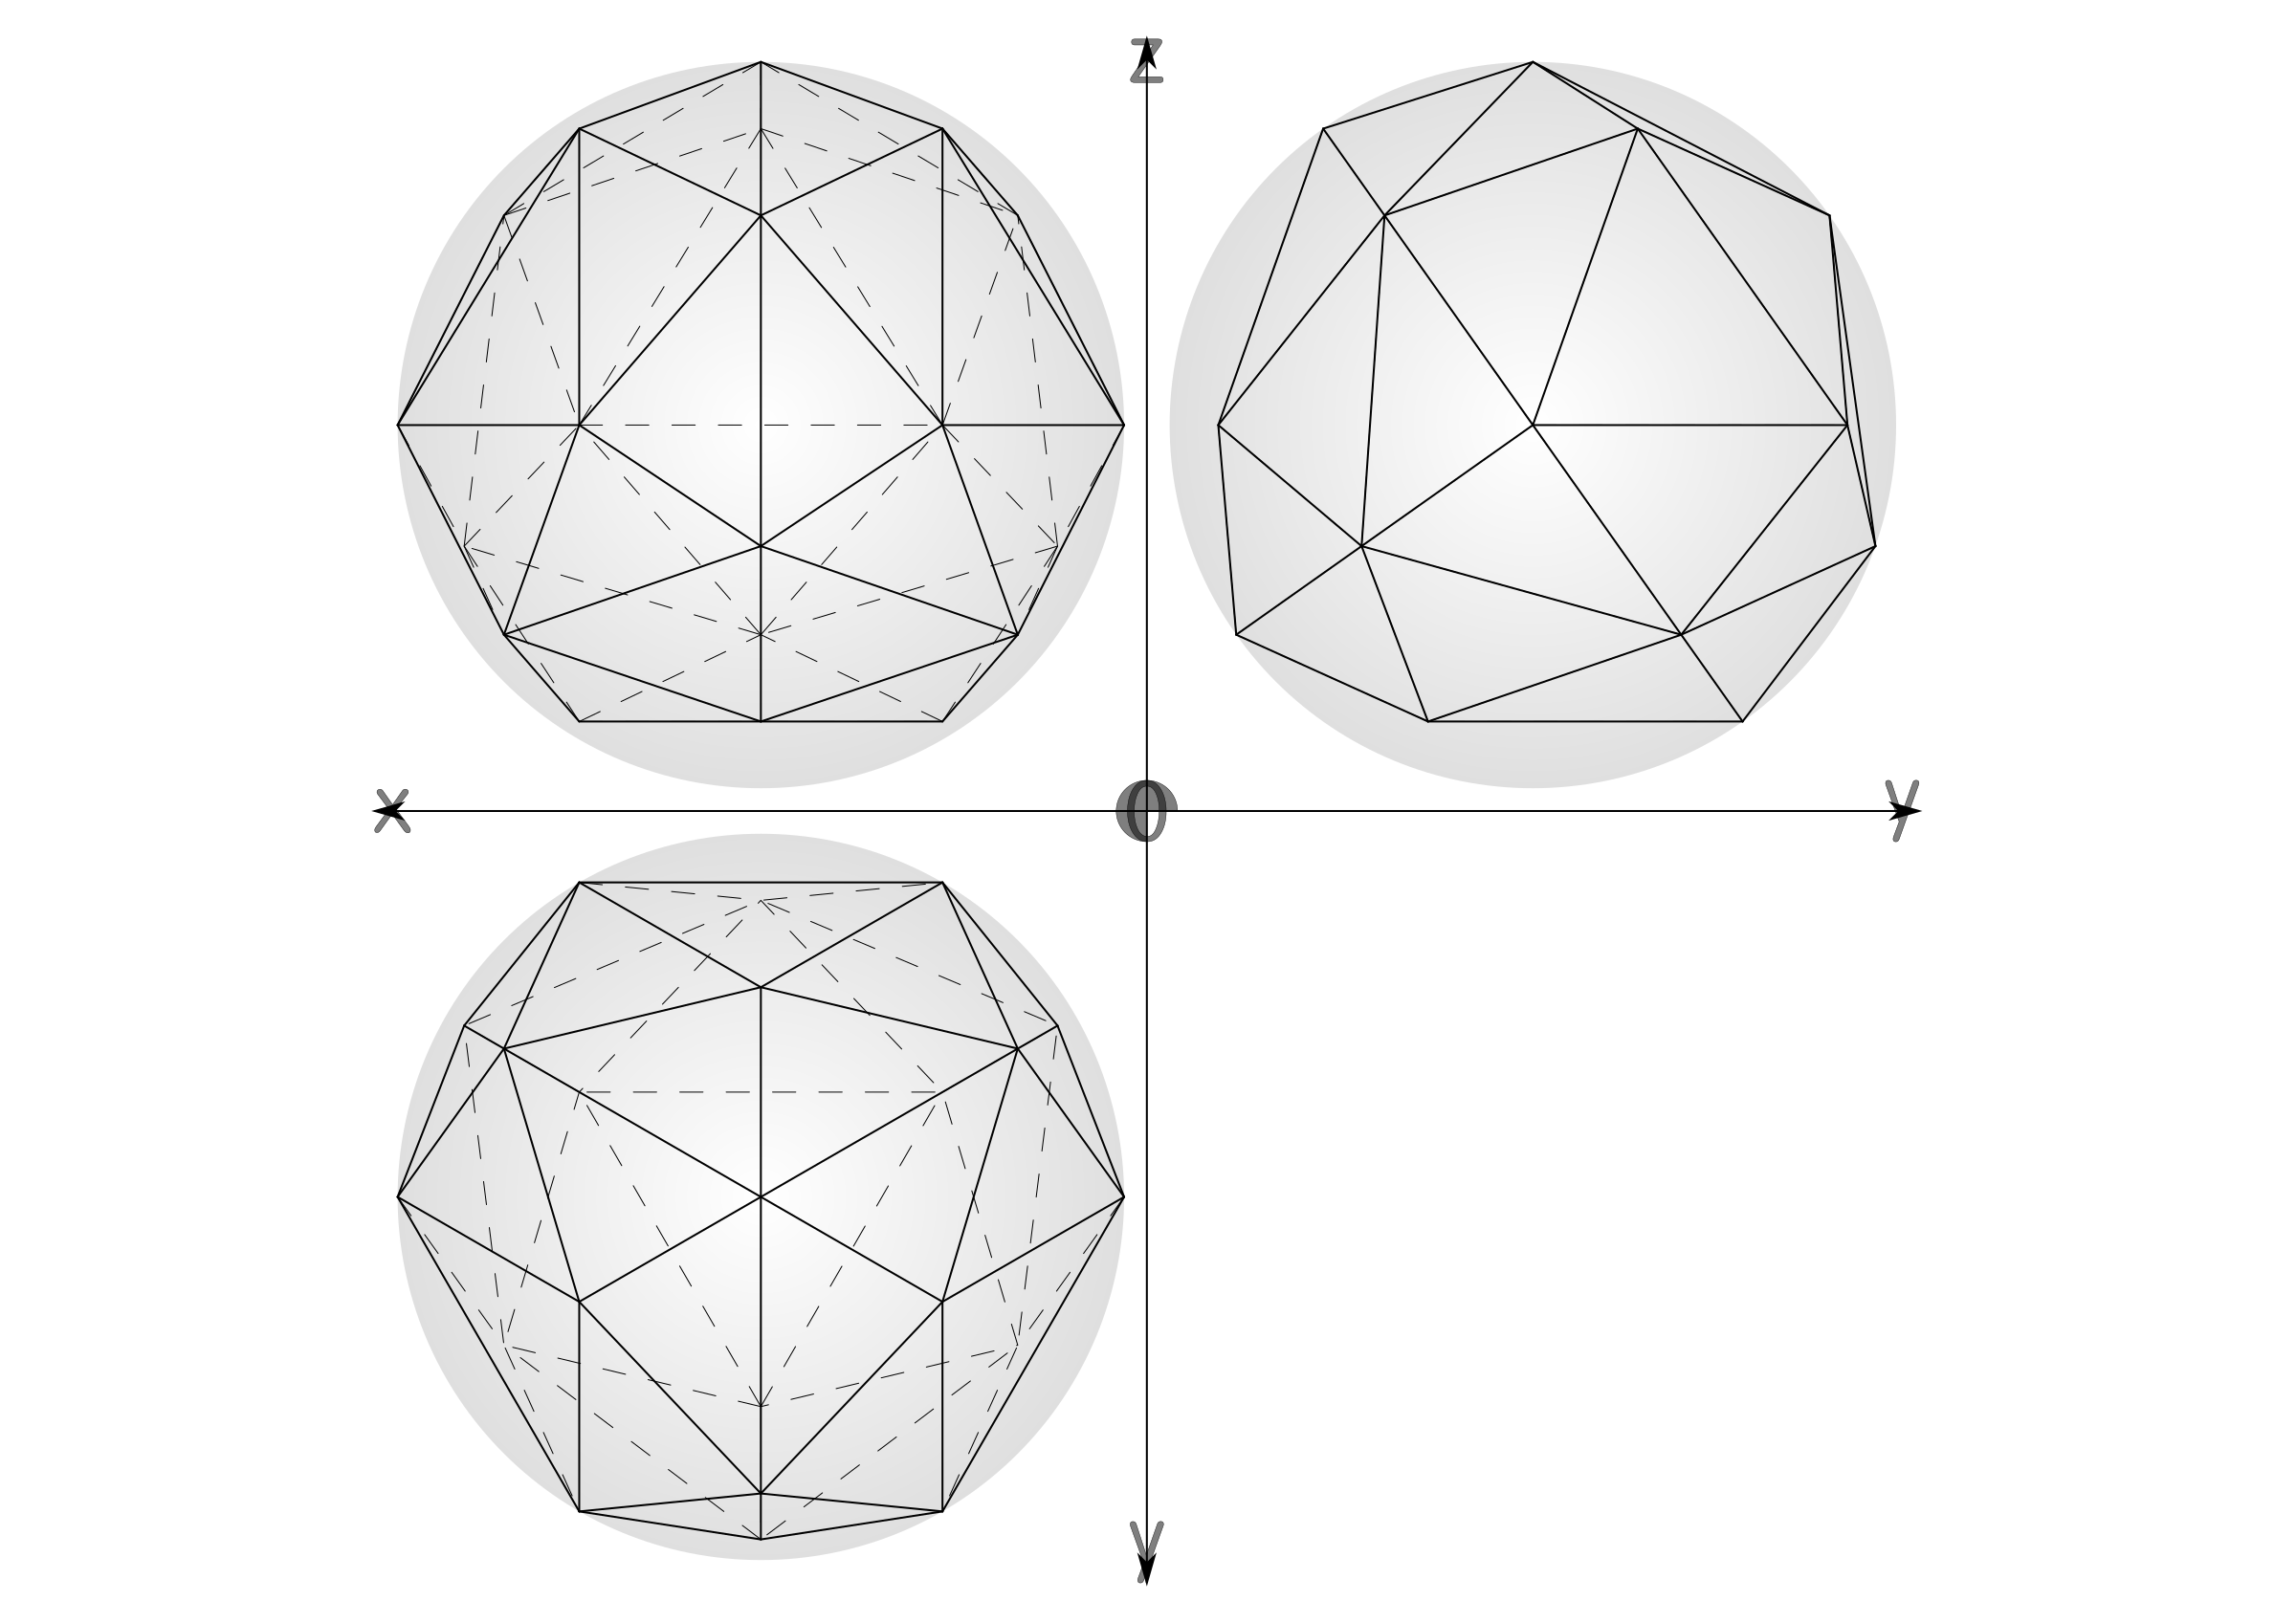 28 construction geodesic spheres recursive from tetrahedron by ric5sch